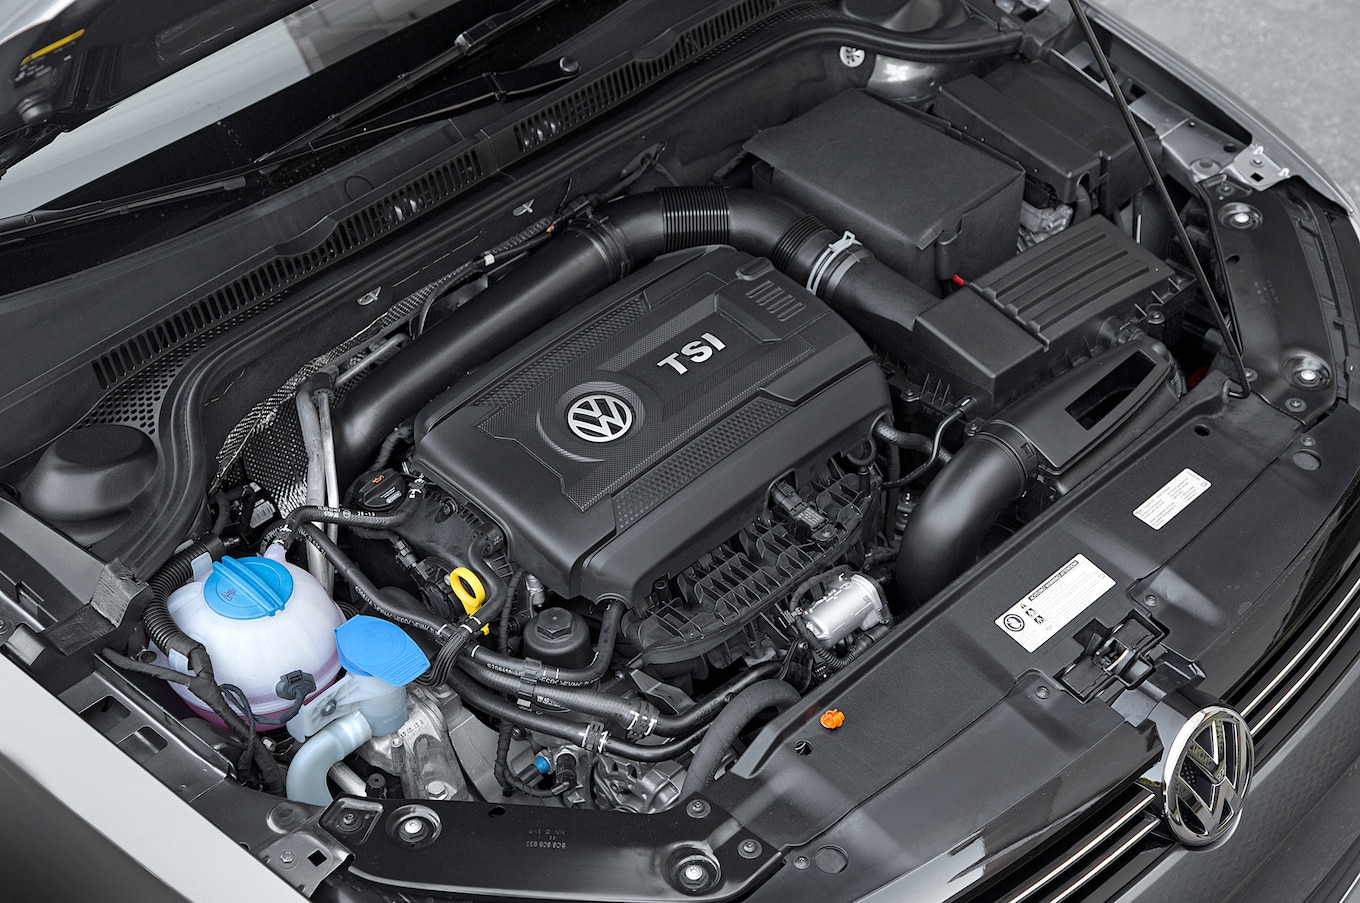 2014 volkswagen jetta 1 8t se first test motortrend 2014 vw jetta engine diagram [ 1360 x 903 Pixel ]